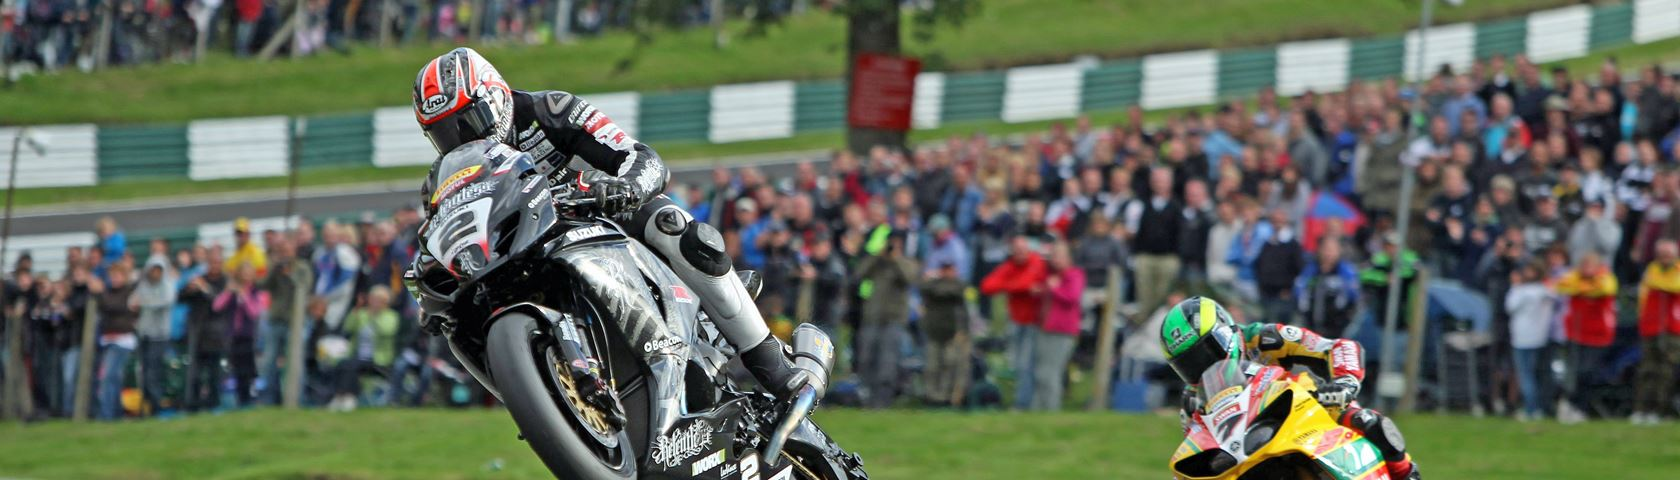 British-Superbike Cadwell Park